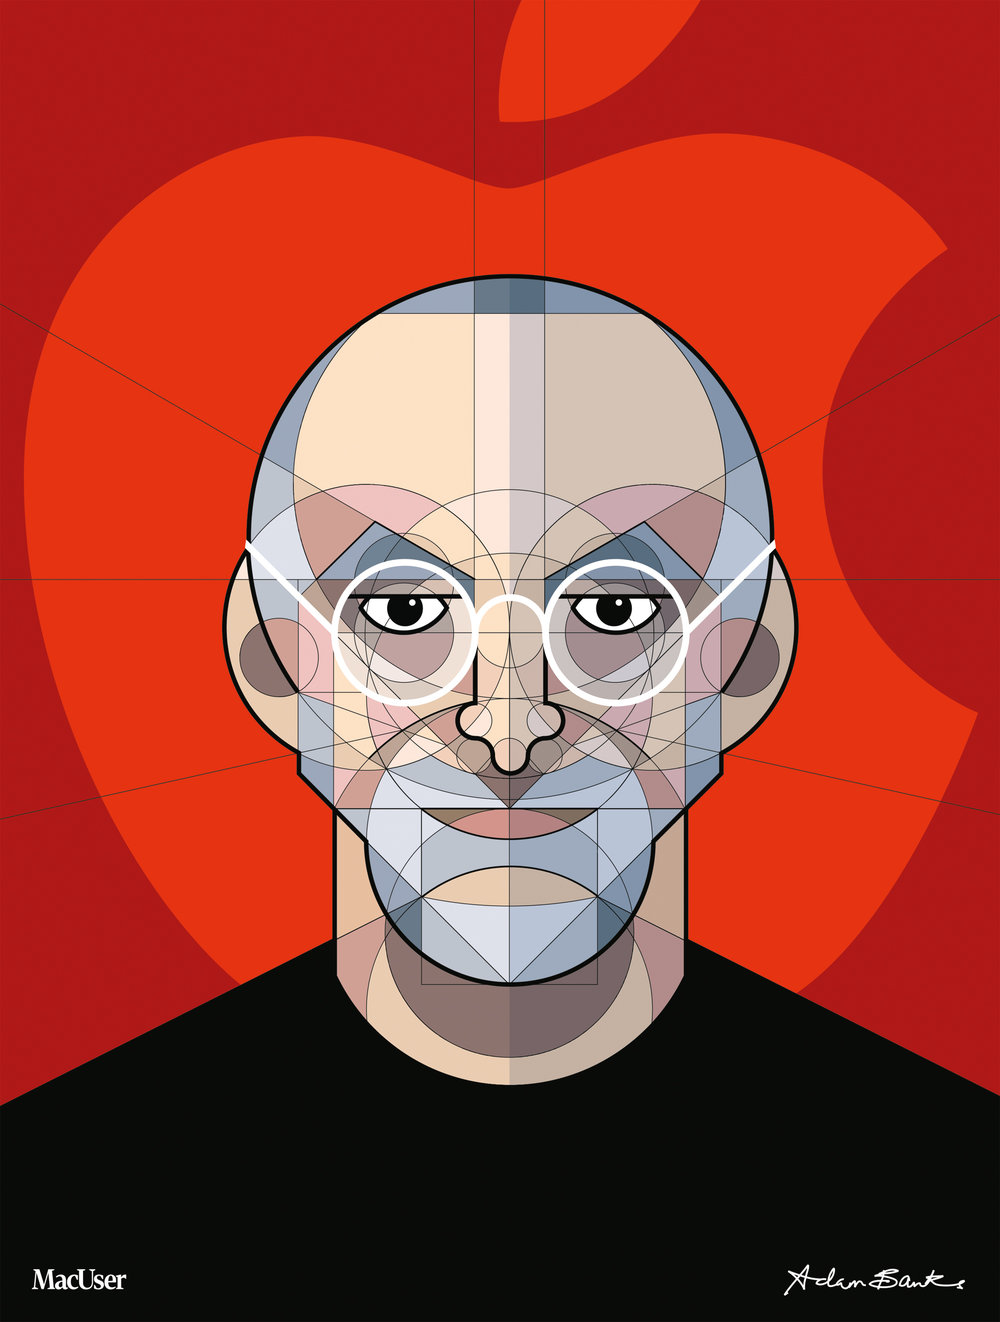 Portrait of Steve Jobs for MacUser cover, 2011